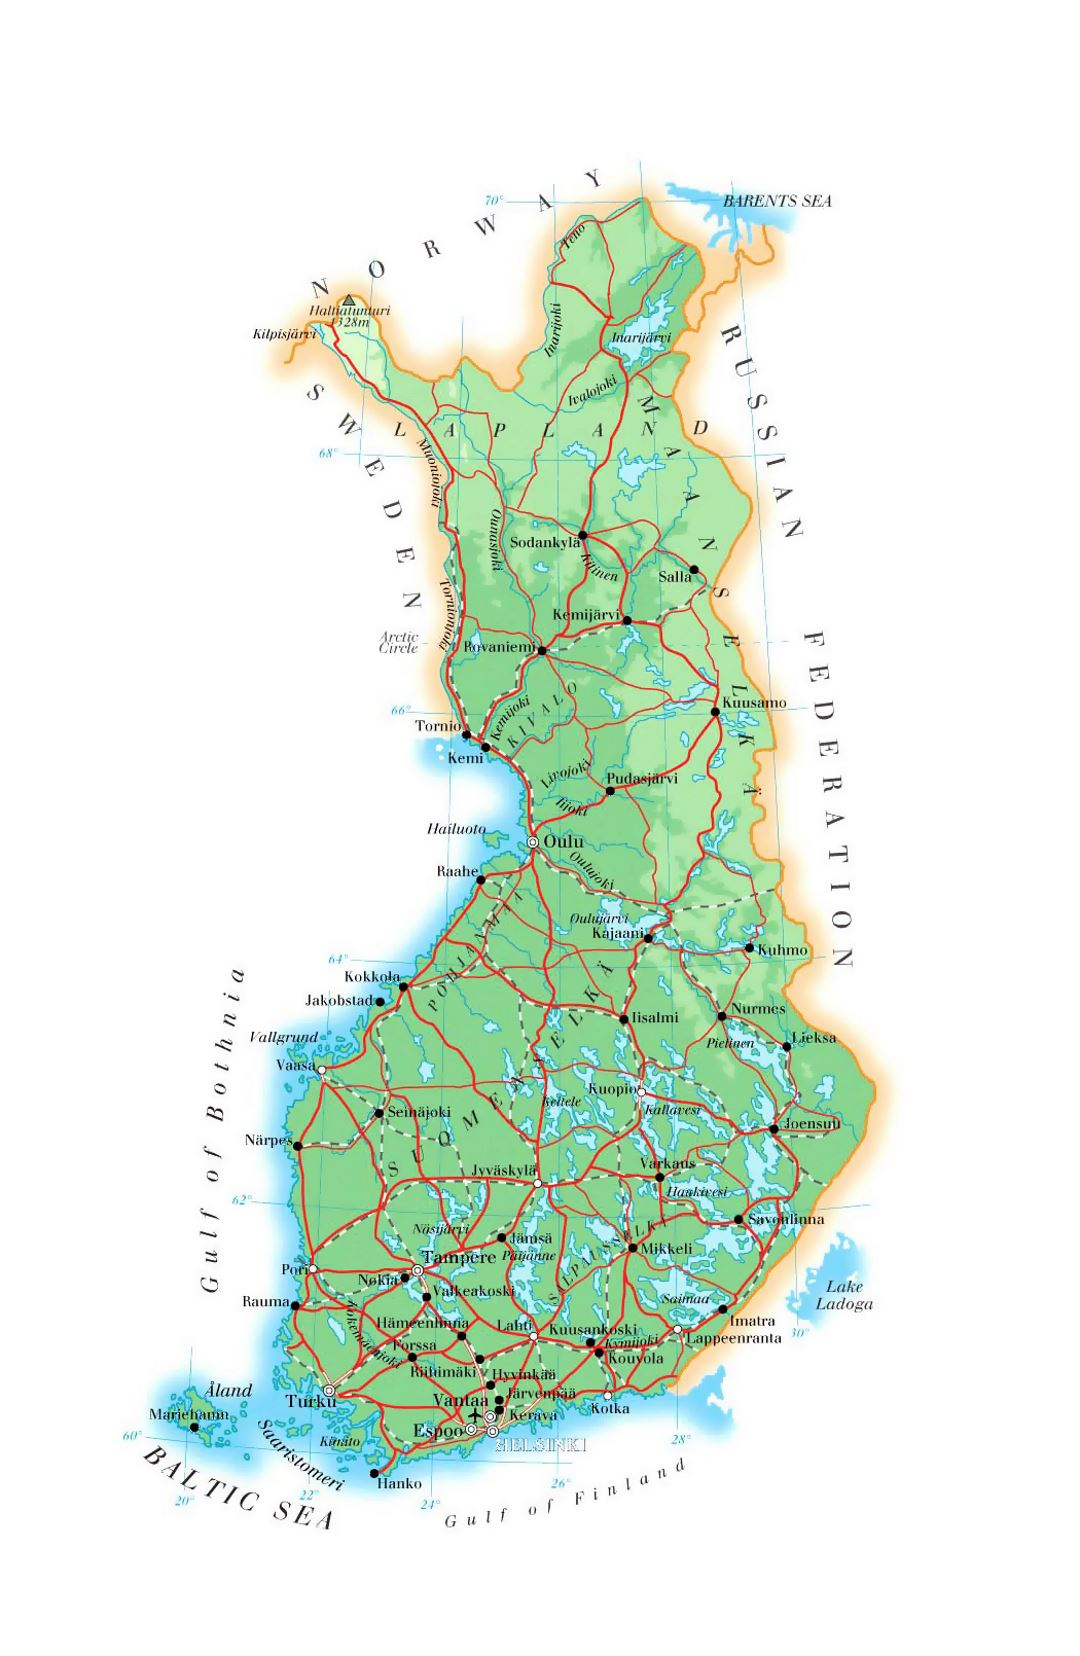 Elevation map of Finland with roads, cities and airports